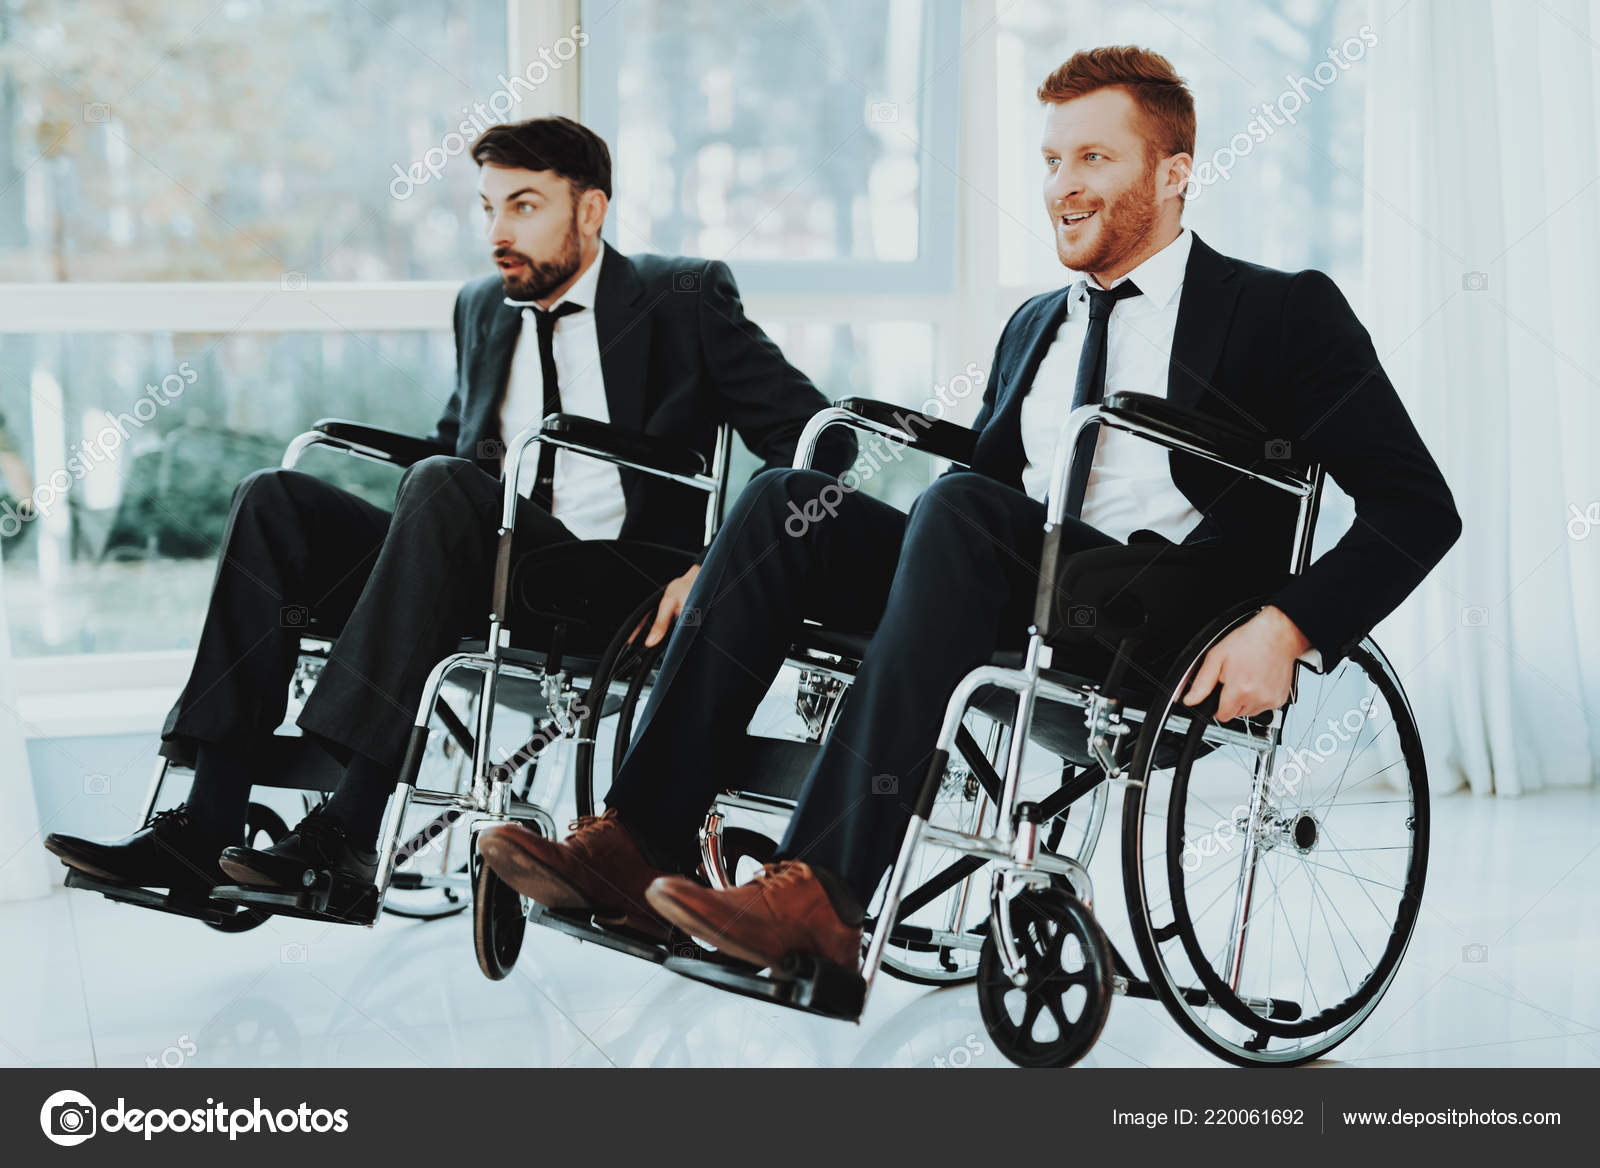 wheelchair man exercise ball desk chair reviews person disabled room panoramic view white interior people stock photo